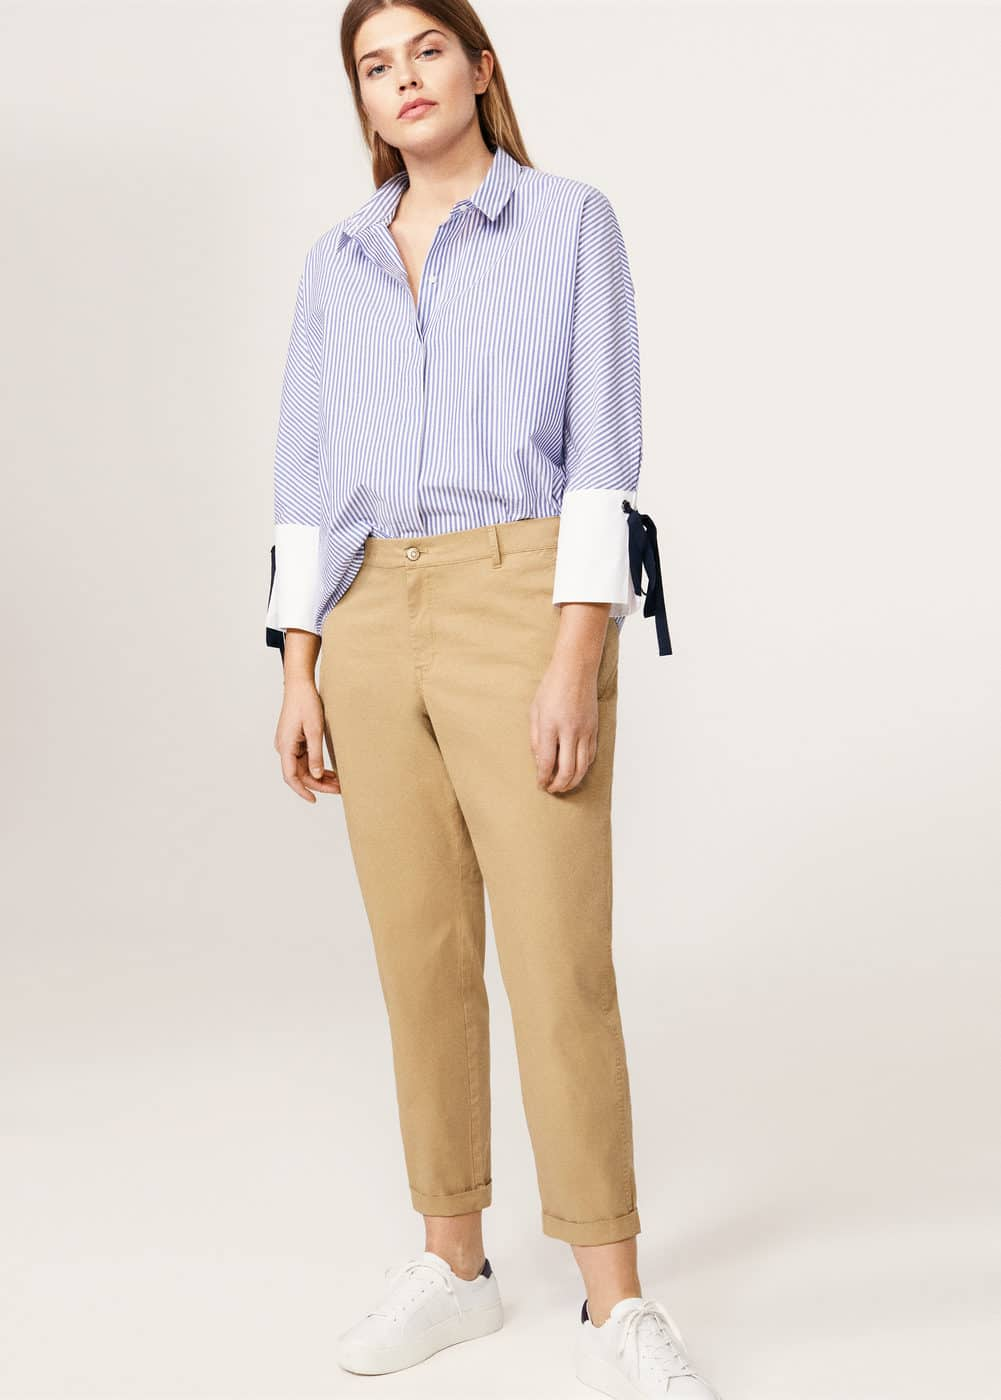 Bow fine-stripe shirt | VIOLETA BY MANGO